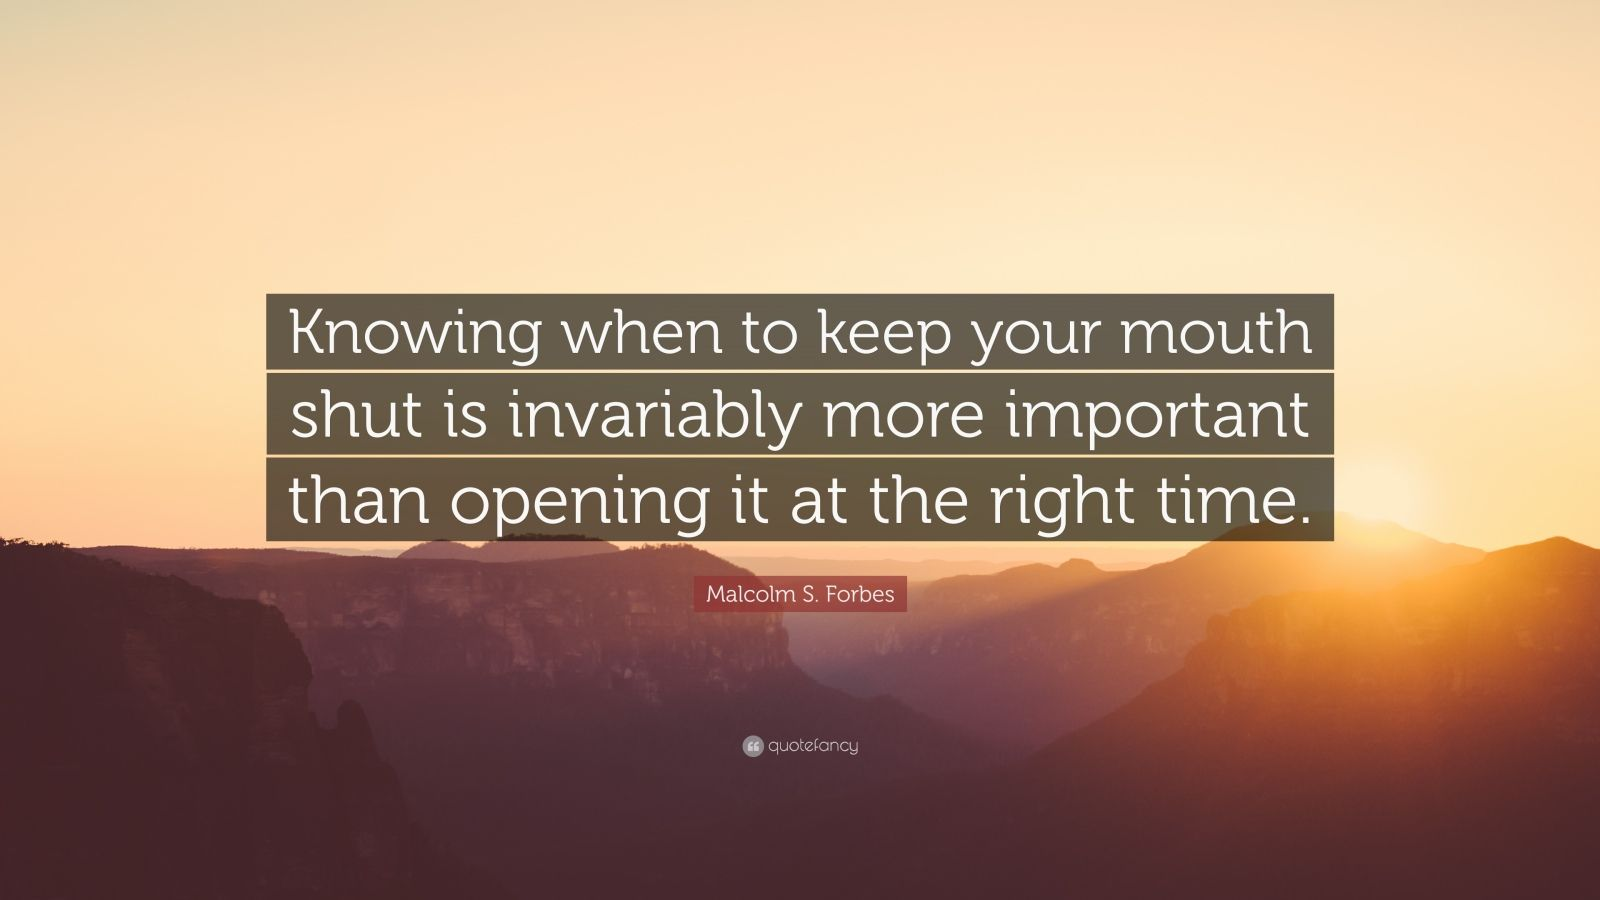 """Malcolm S. Forbes Quote: """"Knowing when to keep your mouth shut is invariably more important than opening it at the right time."""""""